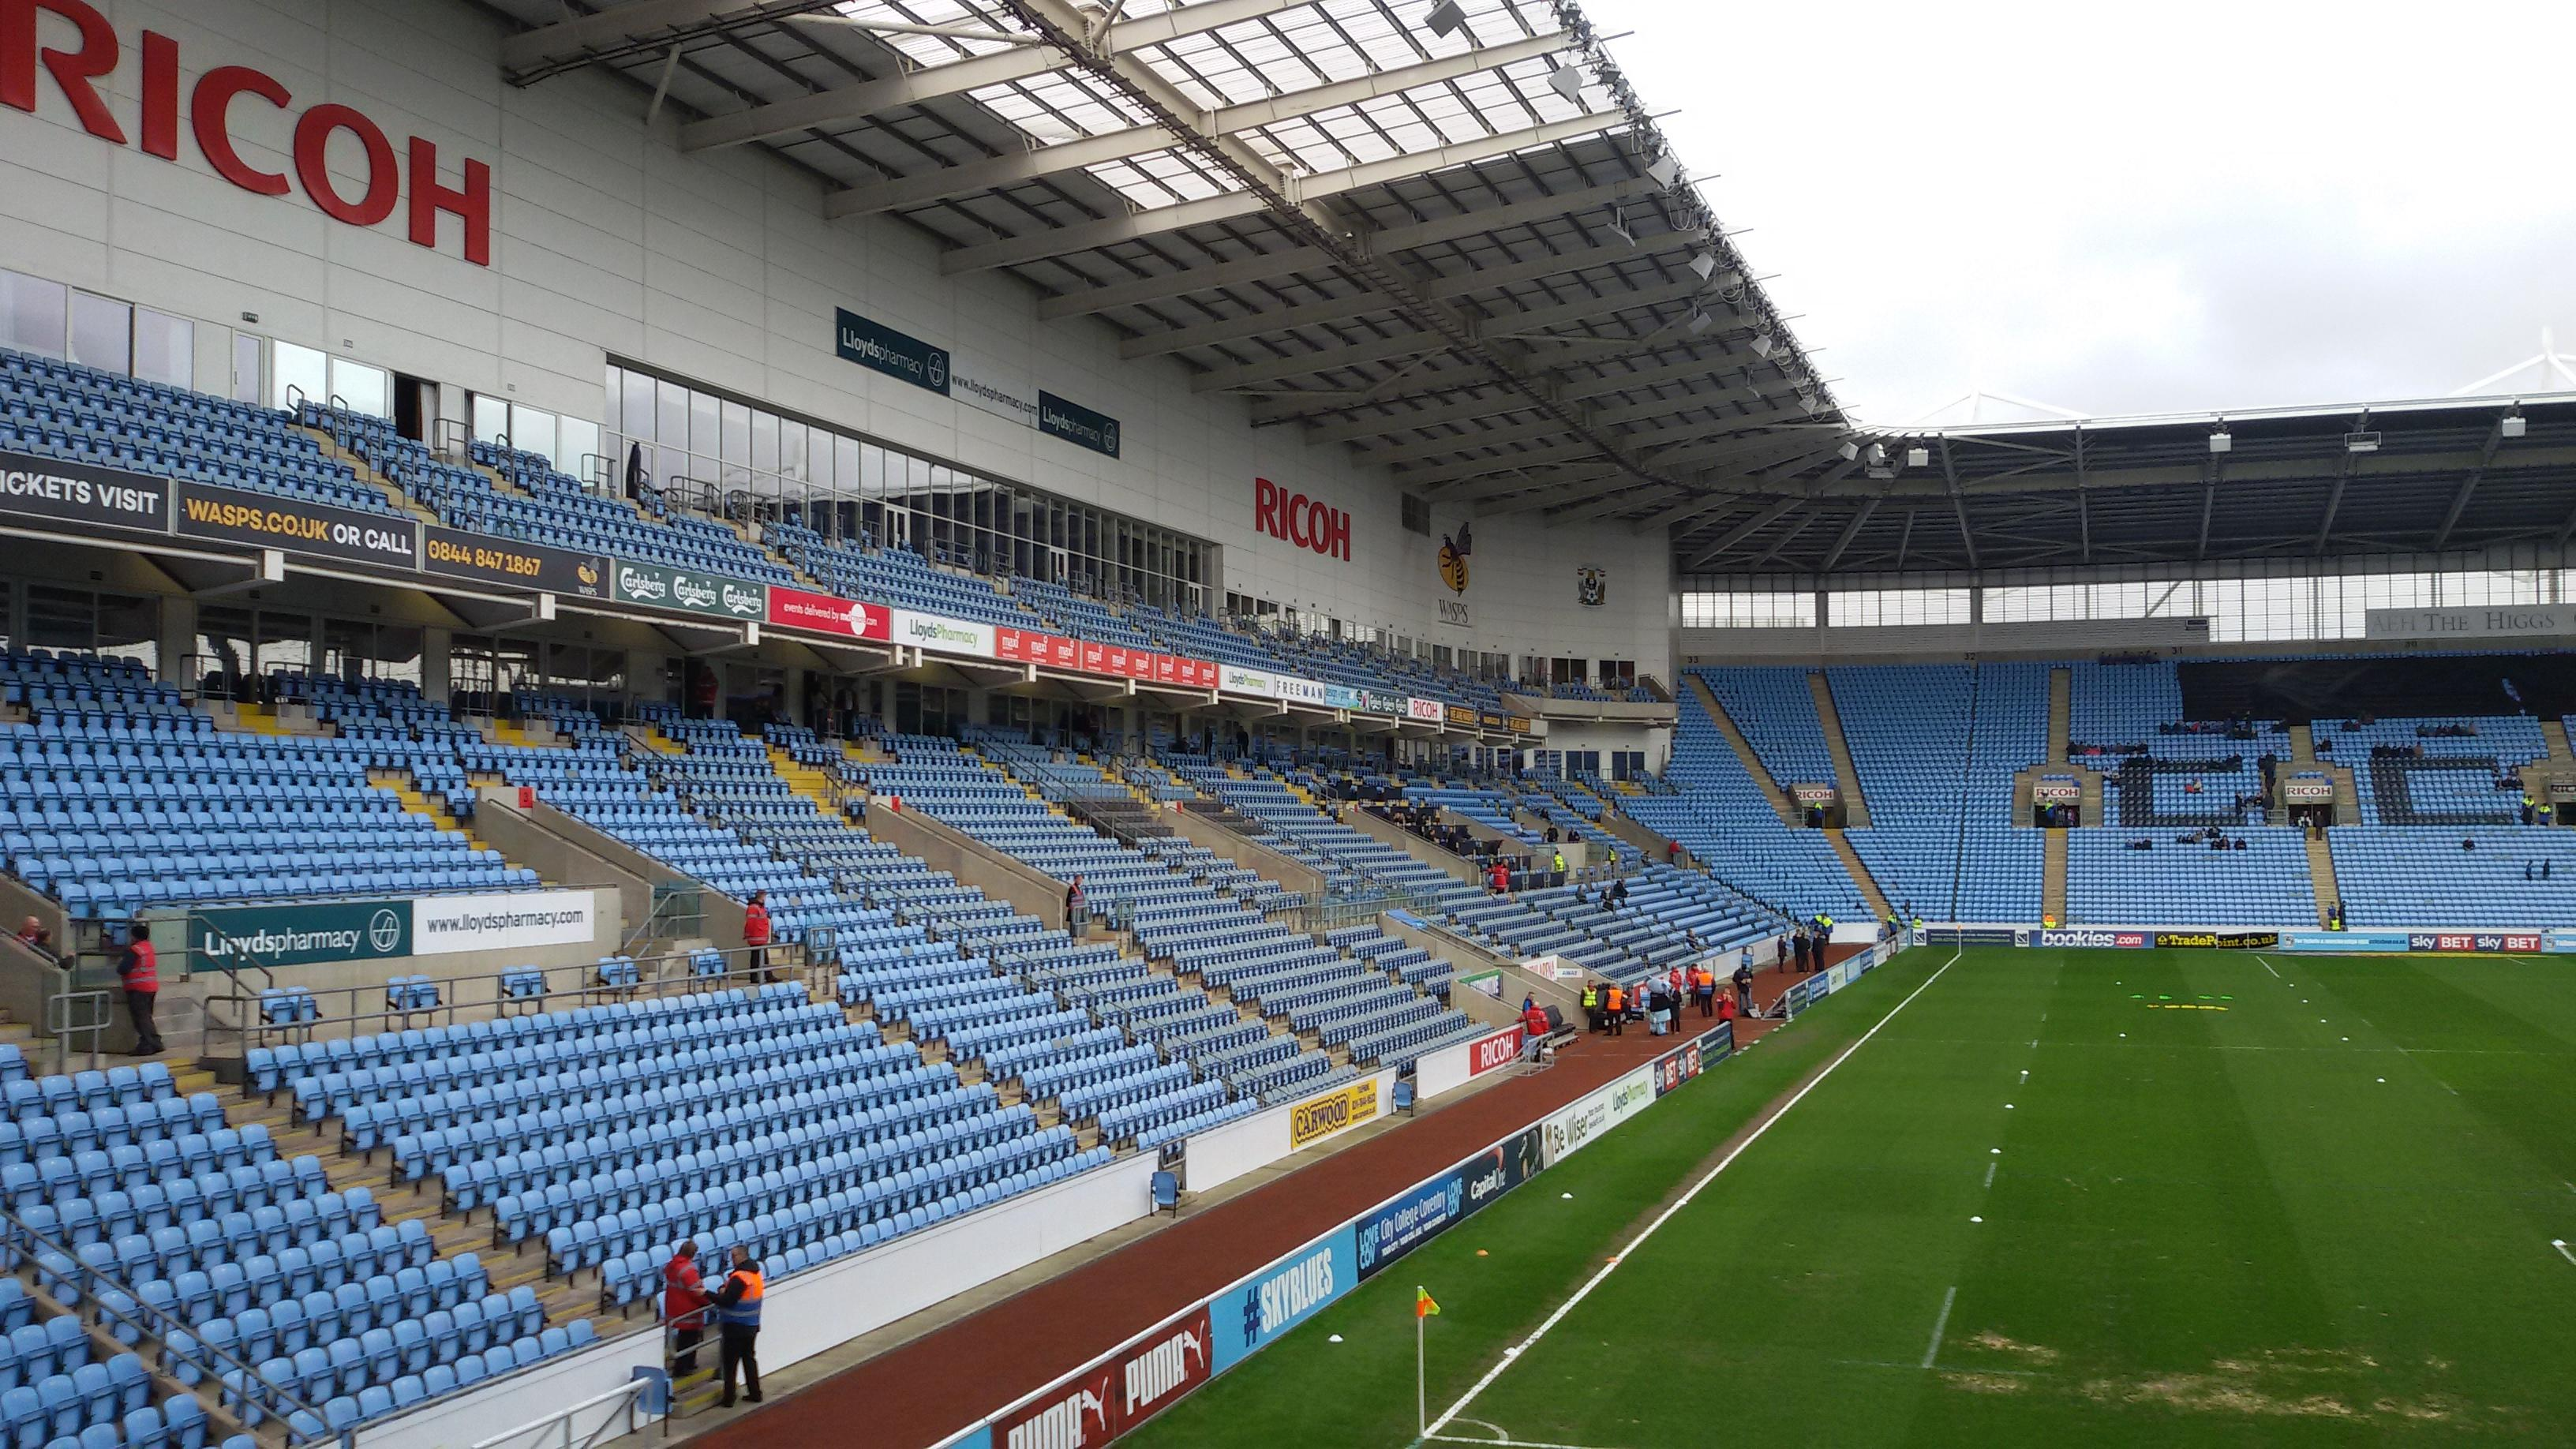 Ricoh Arena Section 8 Row T Seat 22